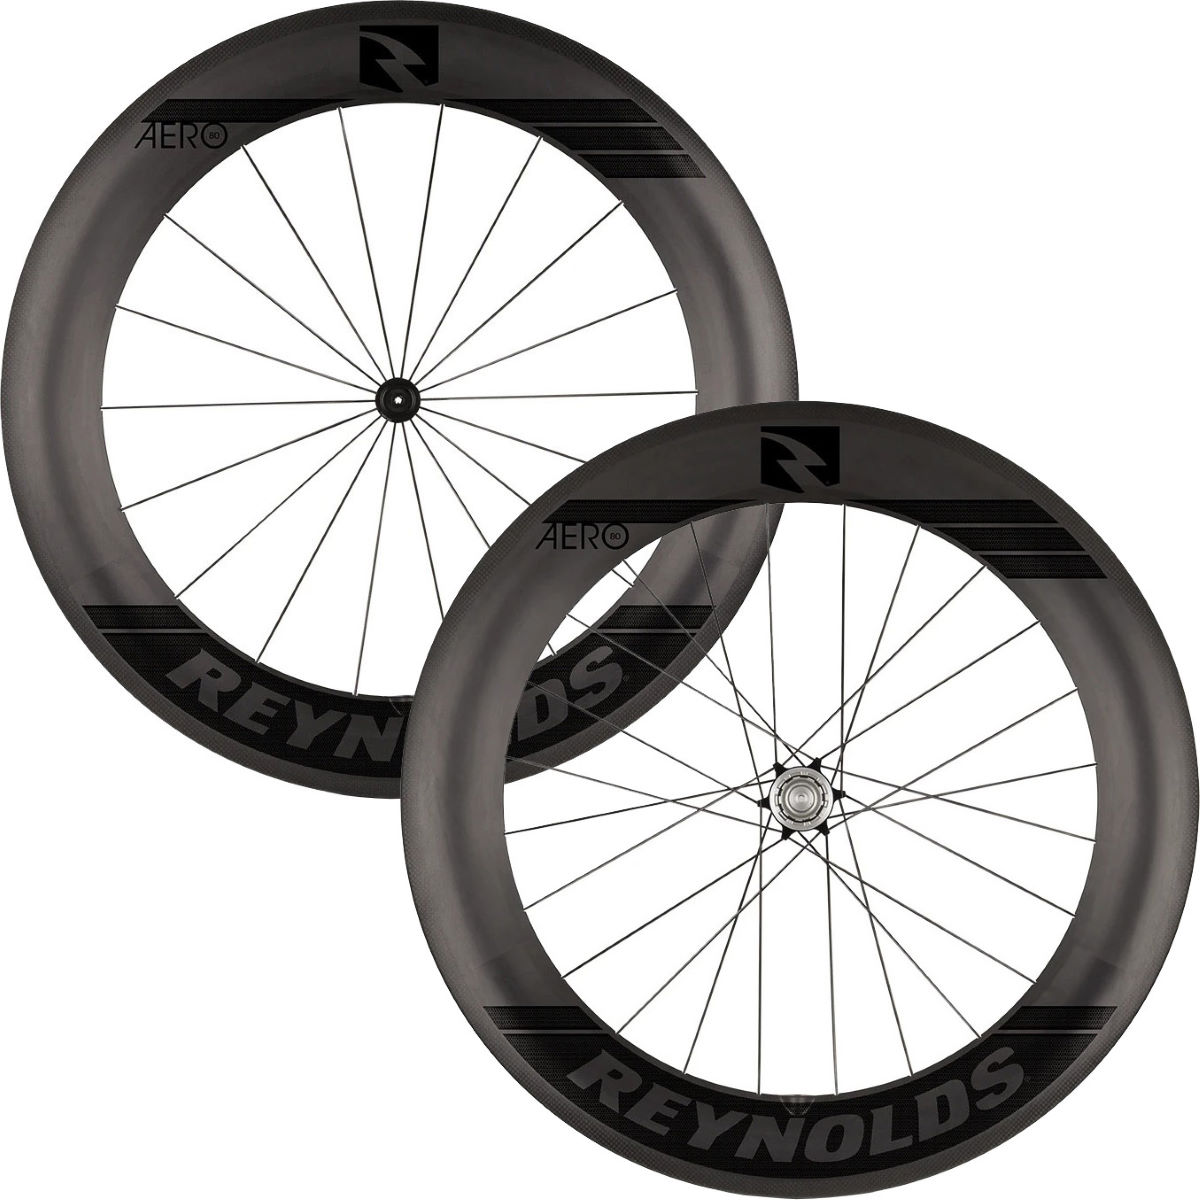 Reynolds Reynolds Aero 80 Black Label Carbon Road Wheelset   Wheel Sets